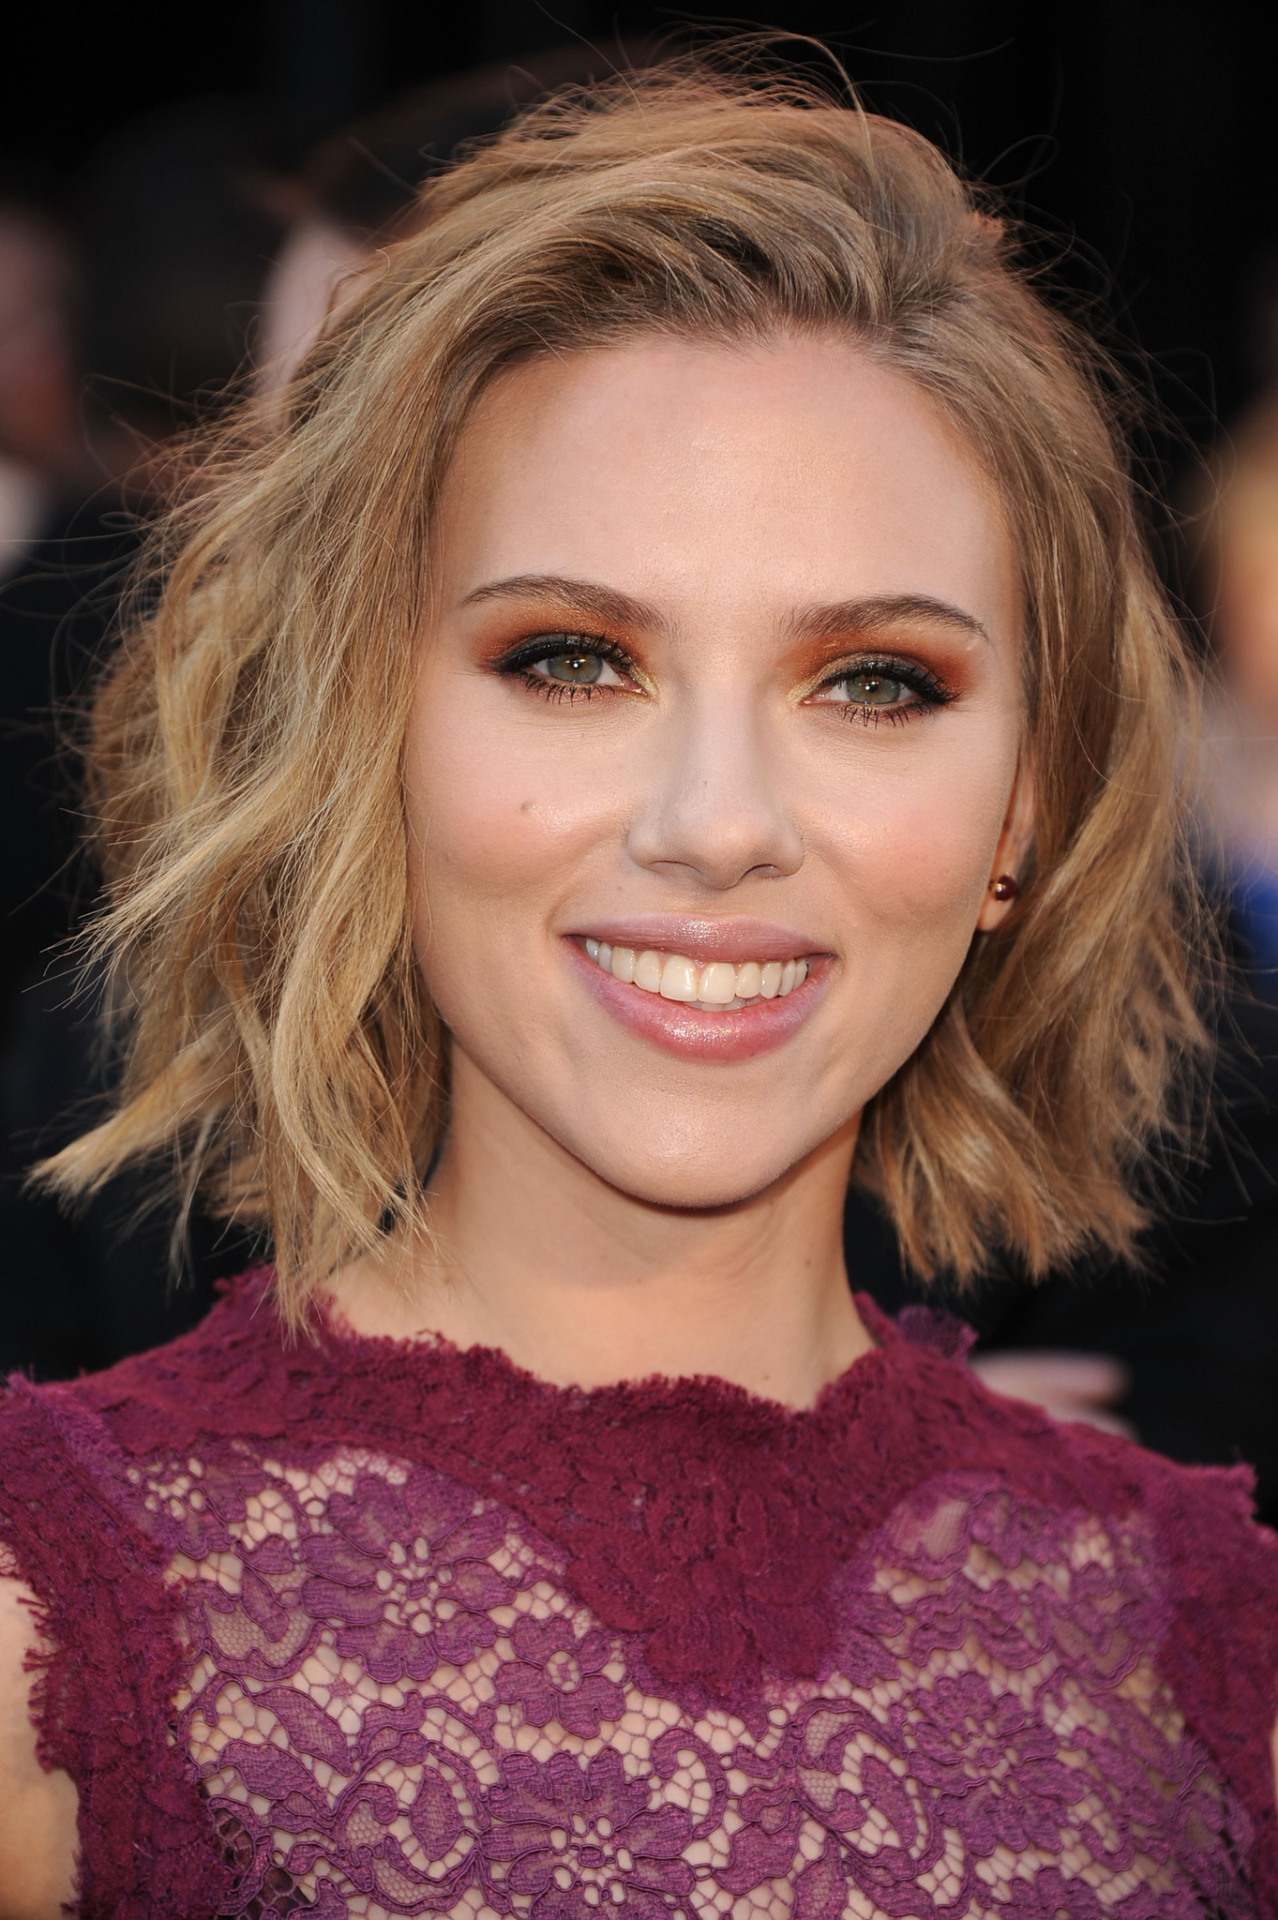 ti5o5o followed Scarlett Johansson on MovieLaLa